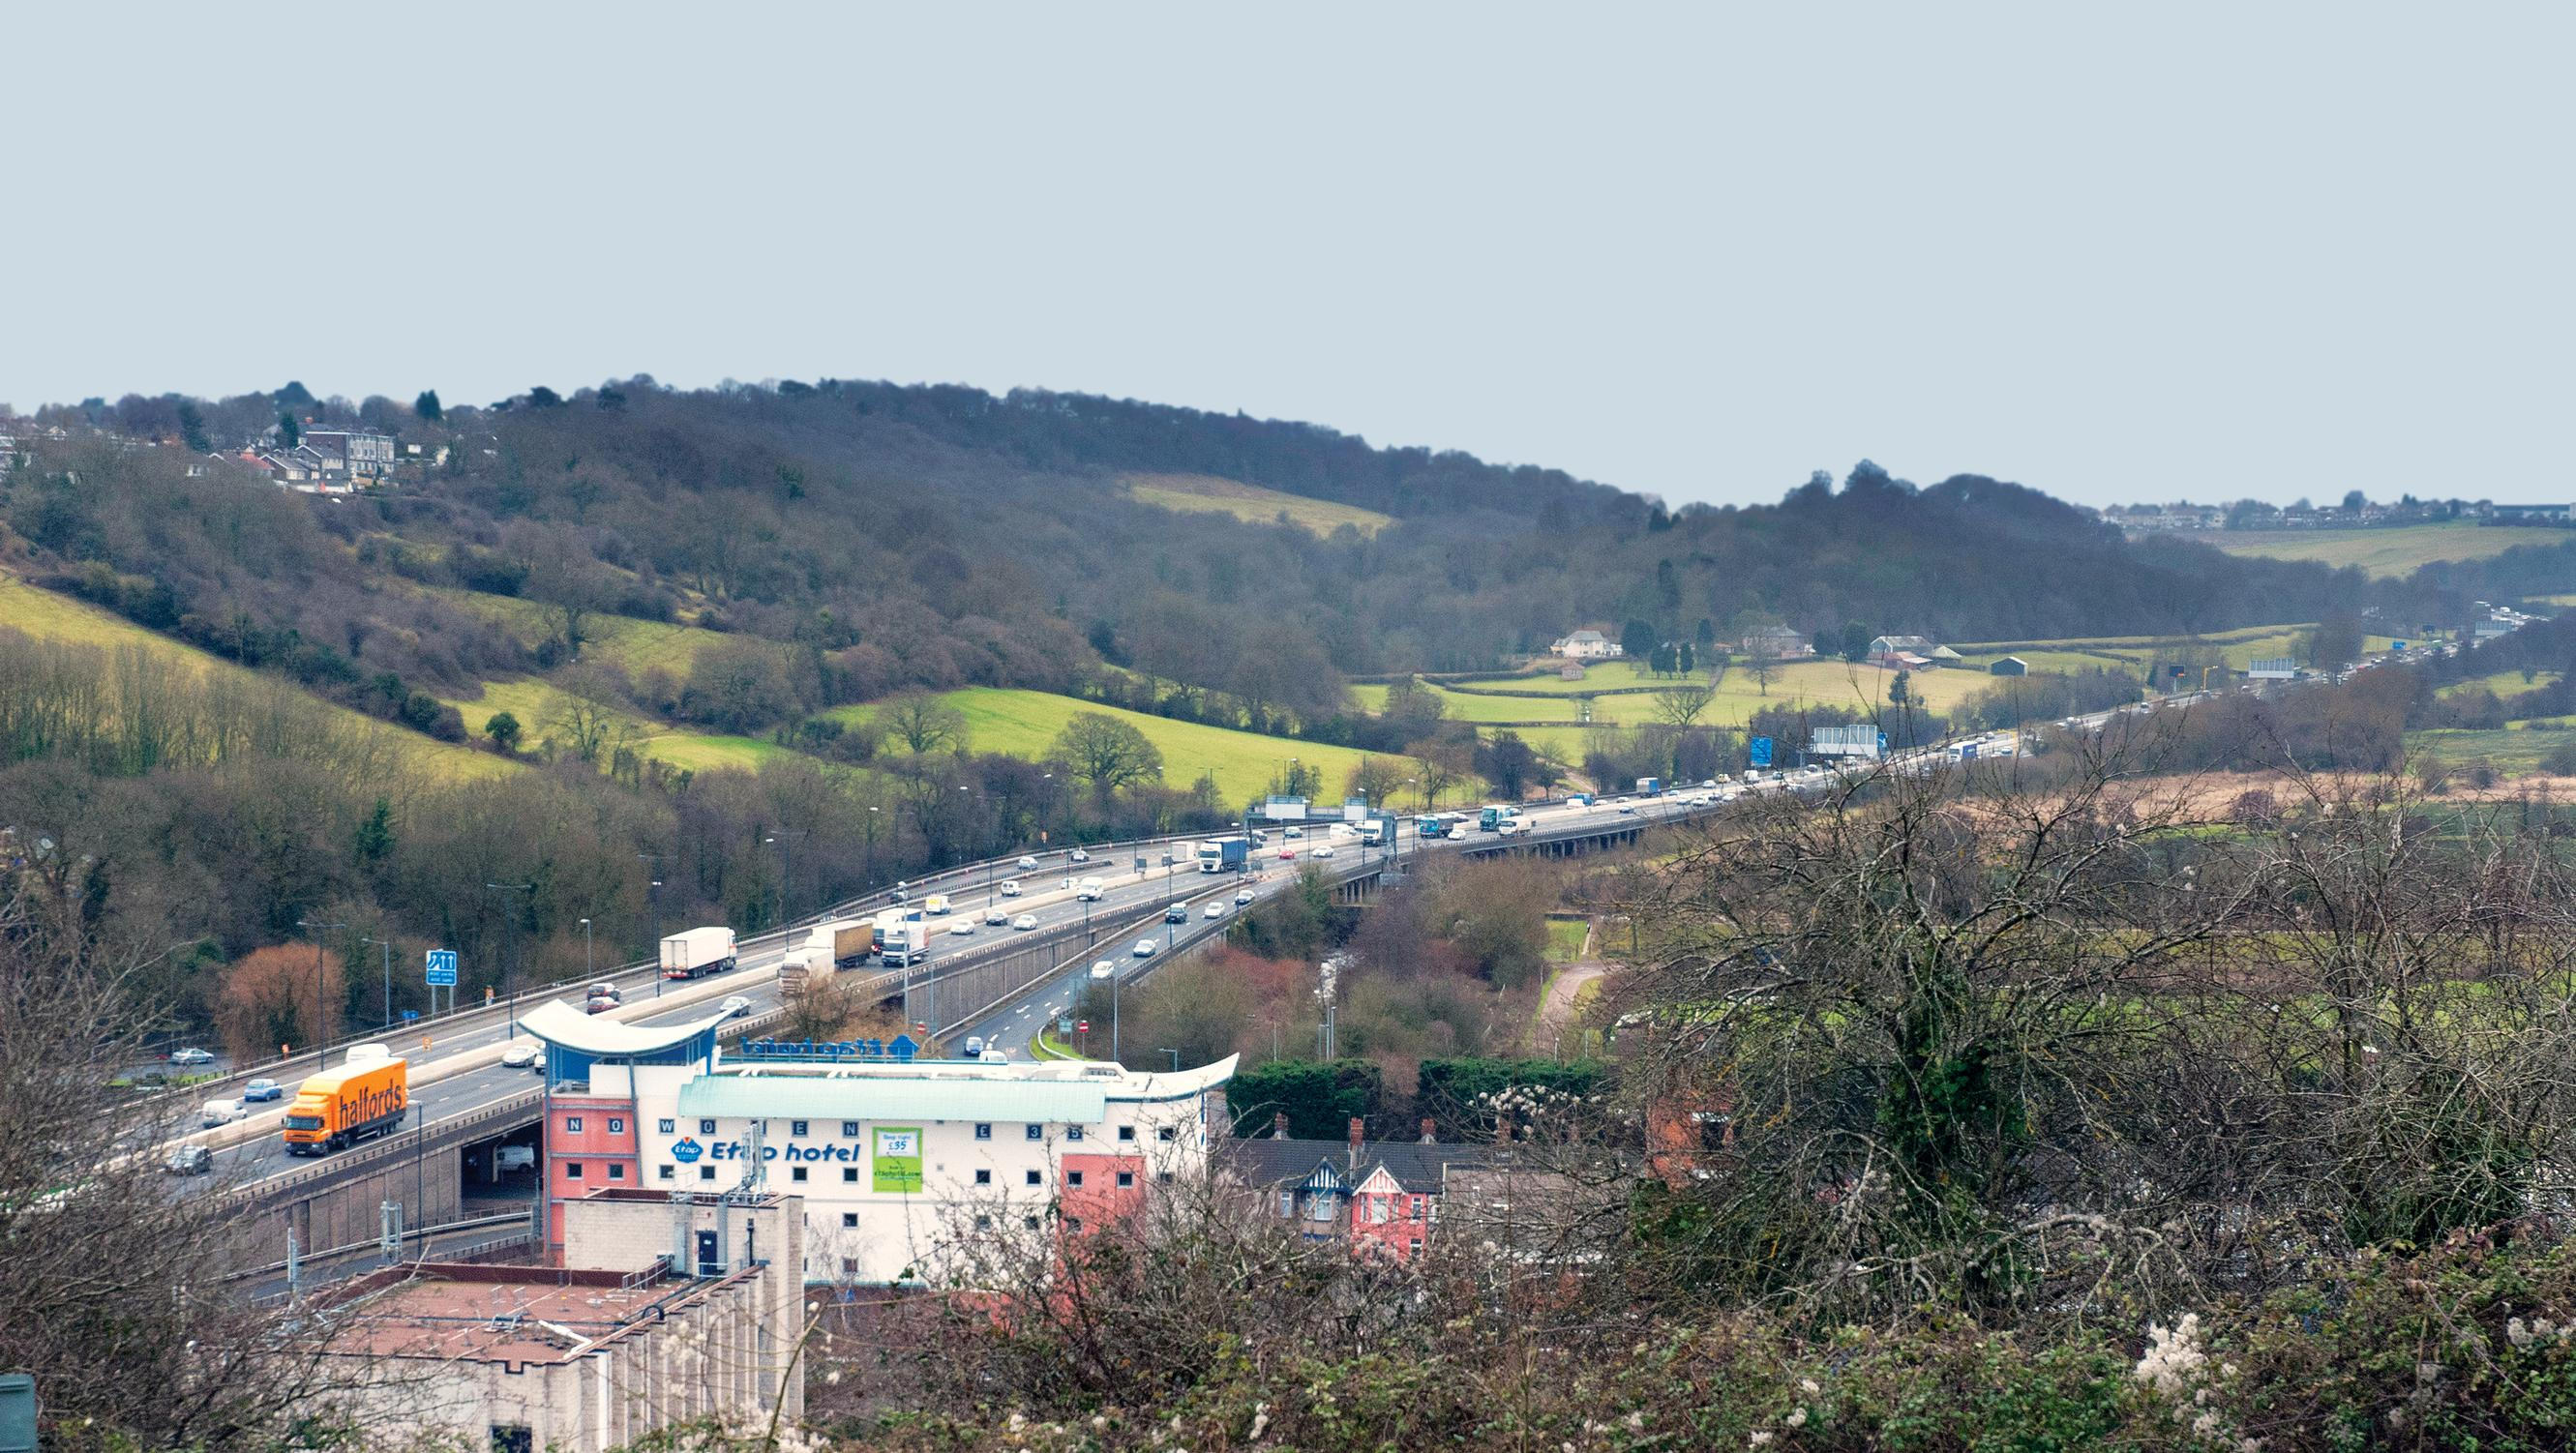 New modelling tool sparks delay of M4 public inquiry